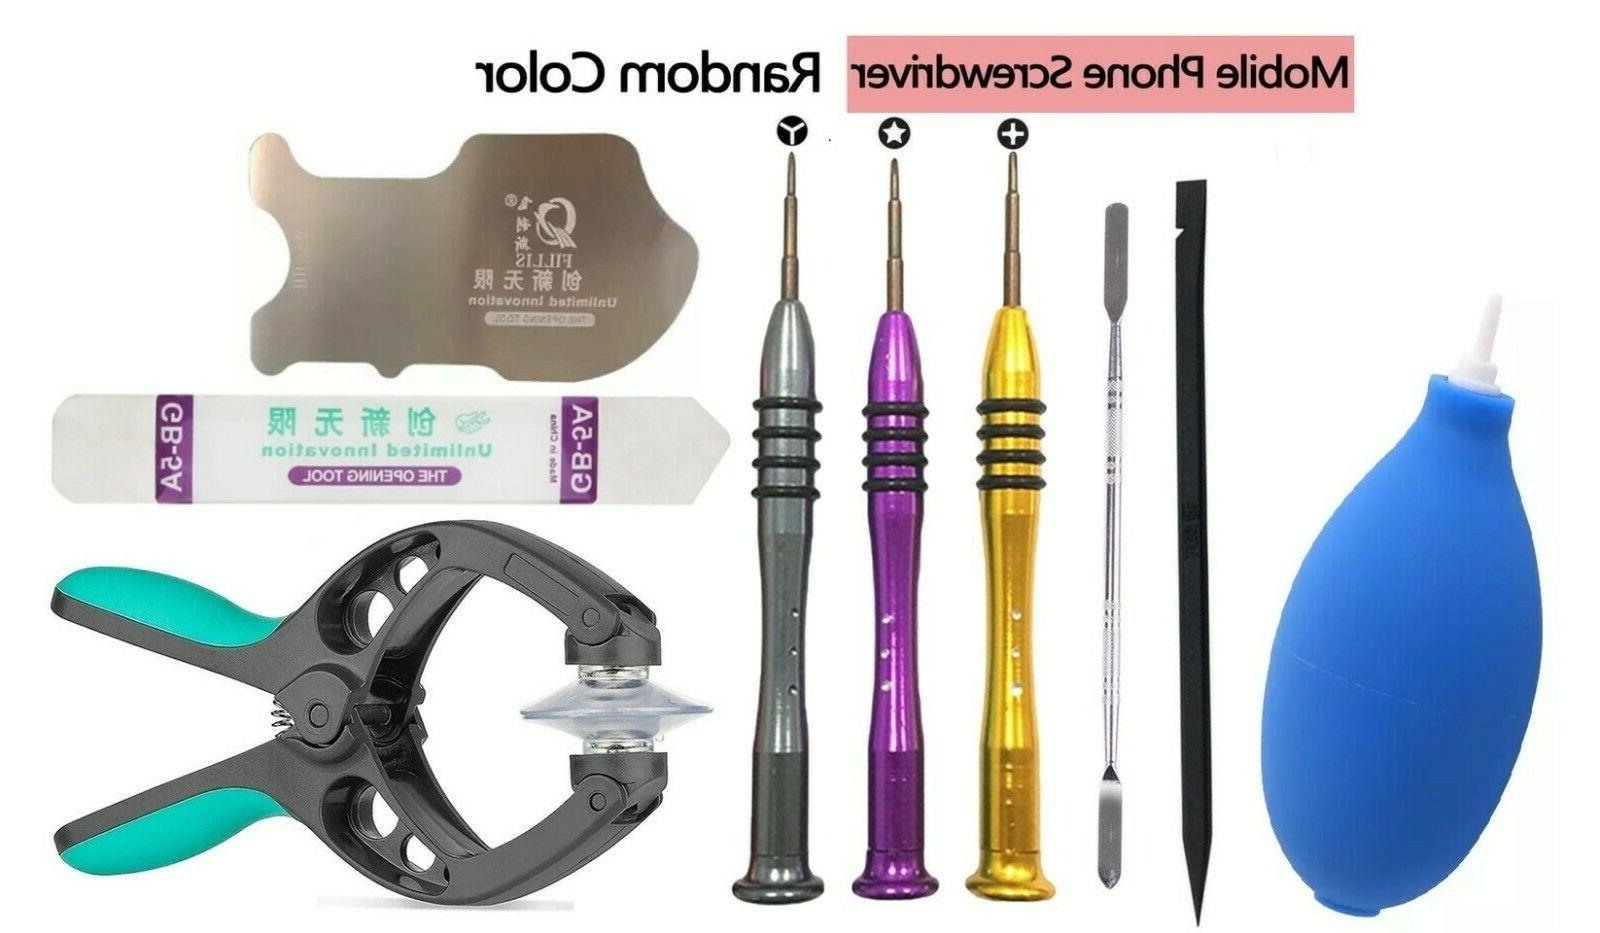 iphone repair tools kit screwdriver set opening